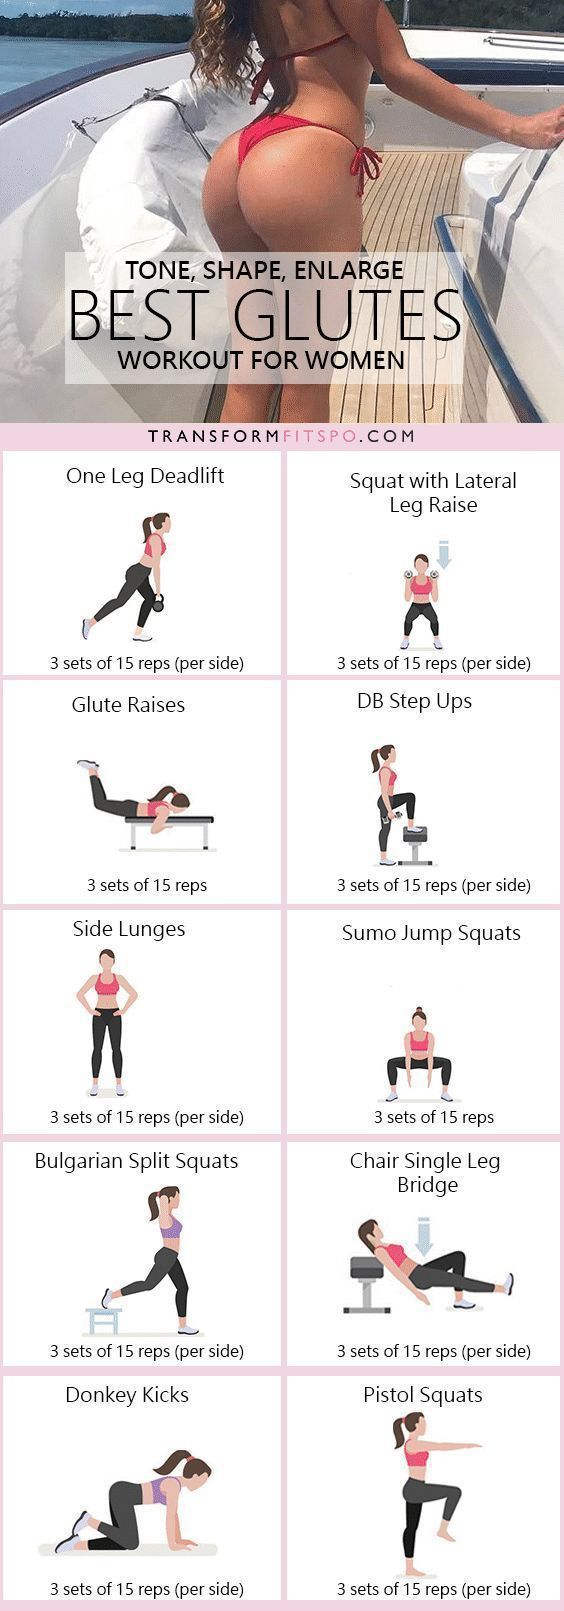 Repin and share if you enjoyed this killer bum lifting workout! Full exercise descriptions can be found on the article.